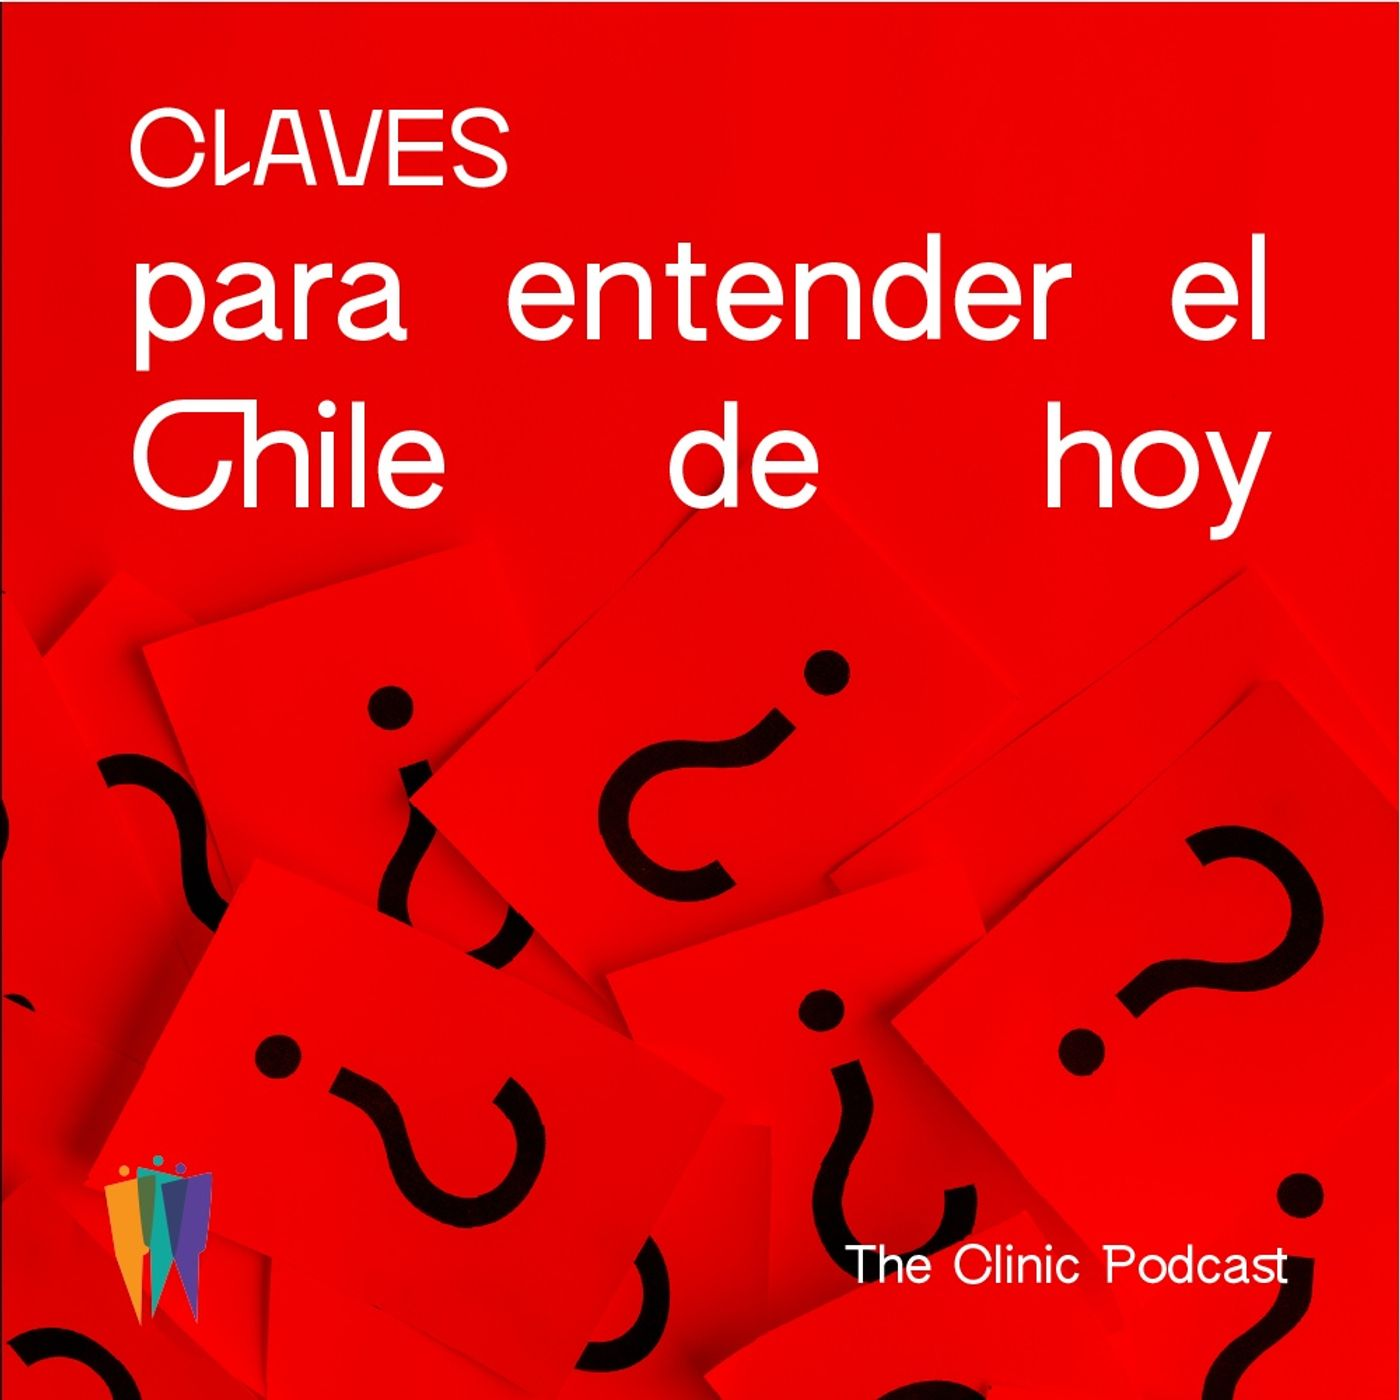 Claves para entender el Chile de hoy:Podcast The Clinic